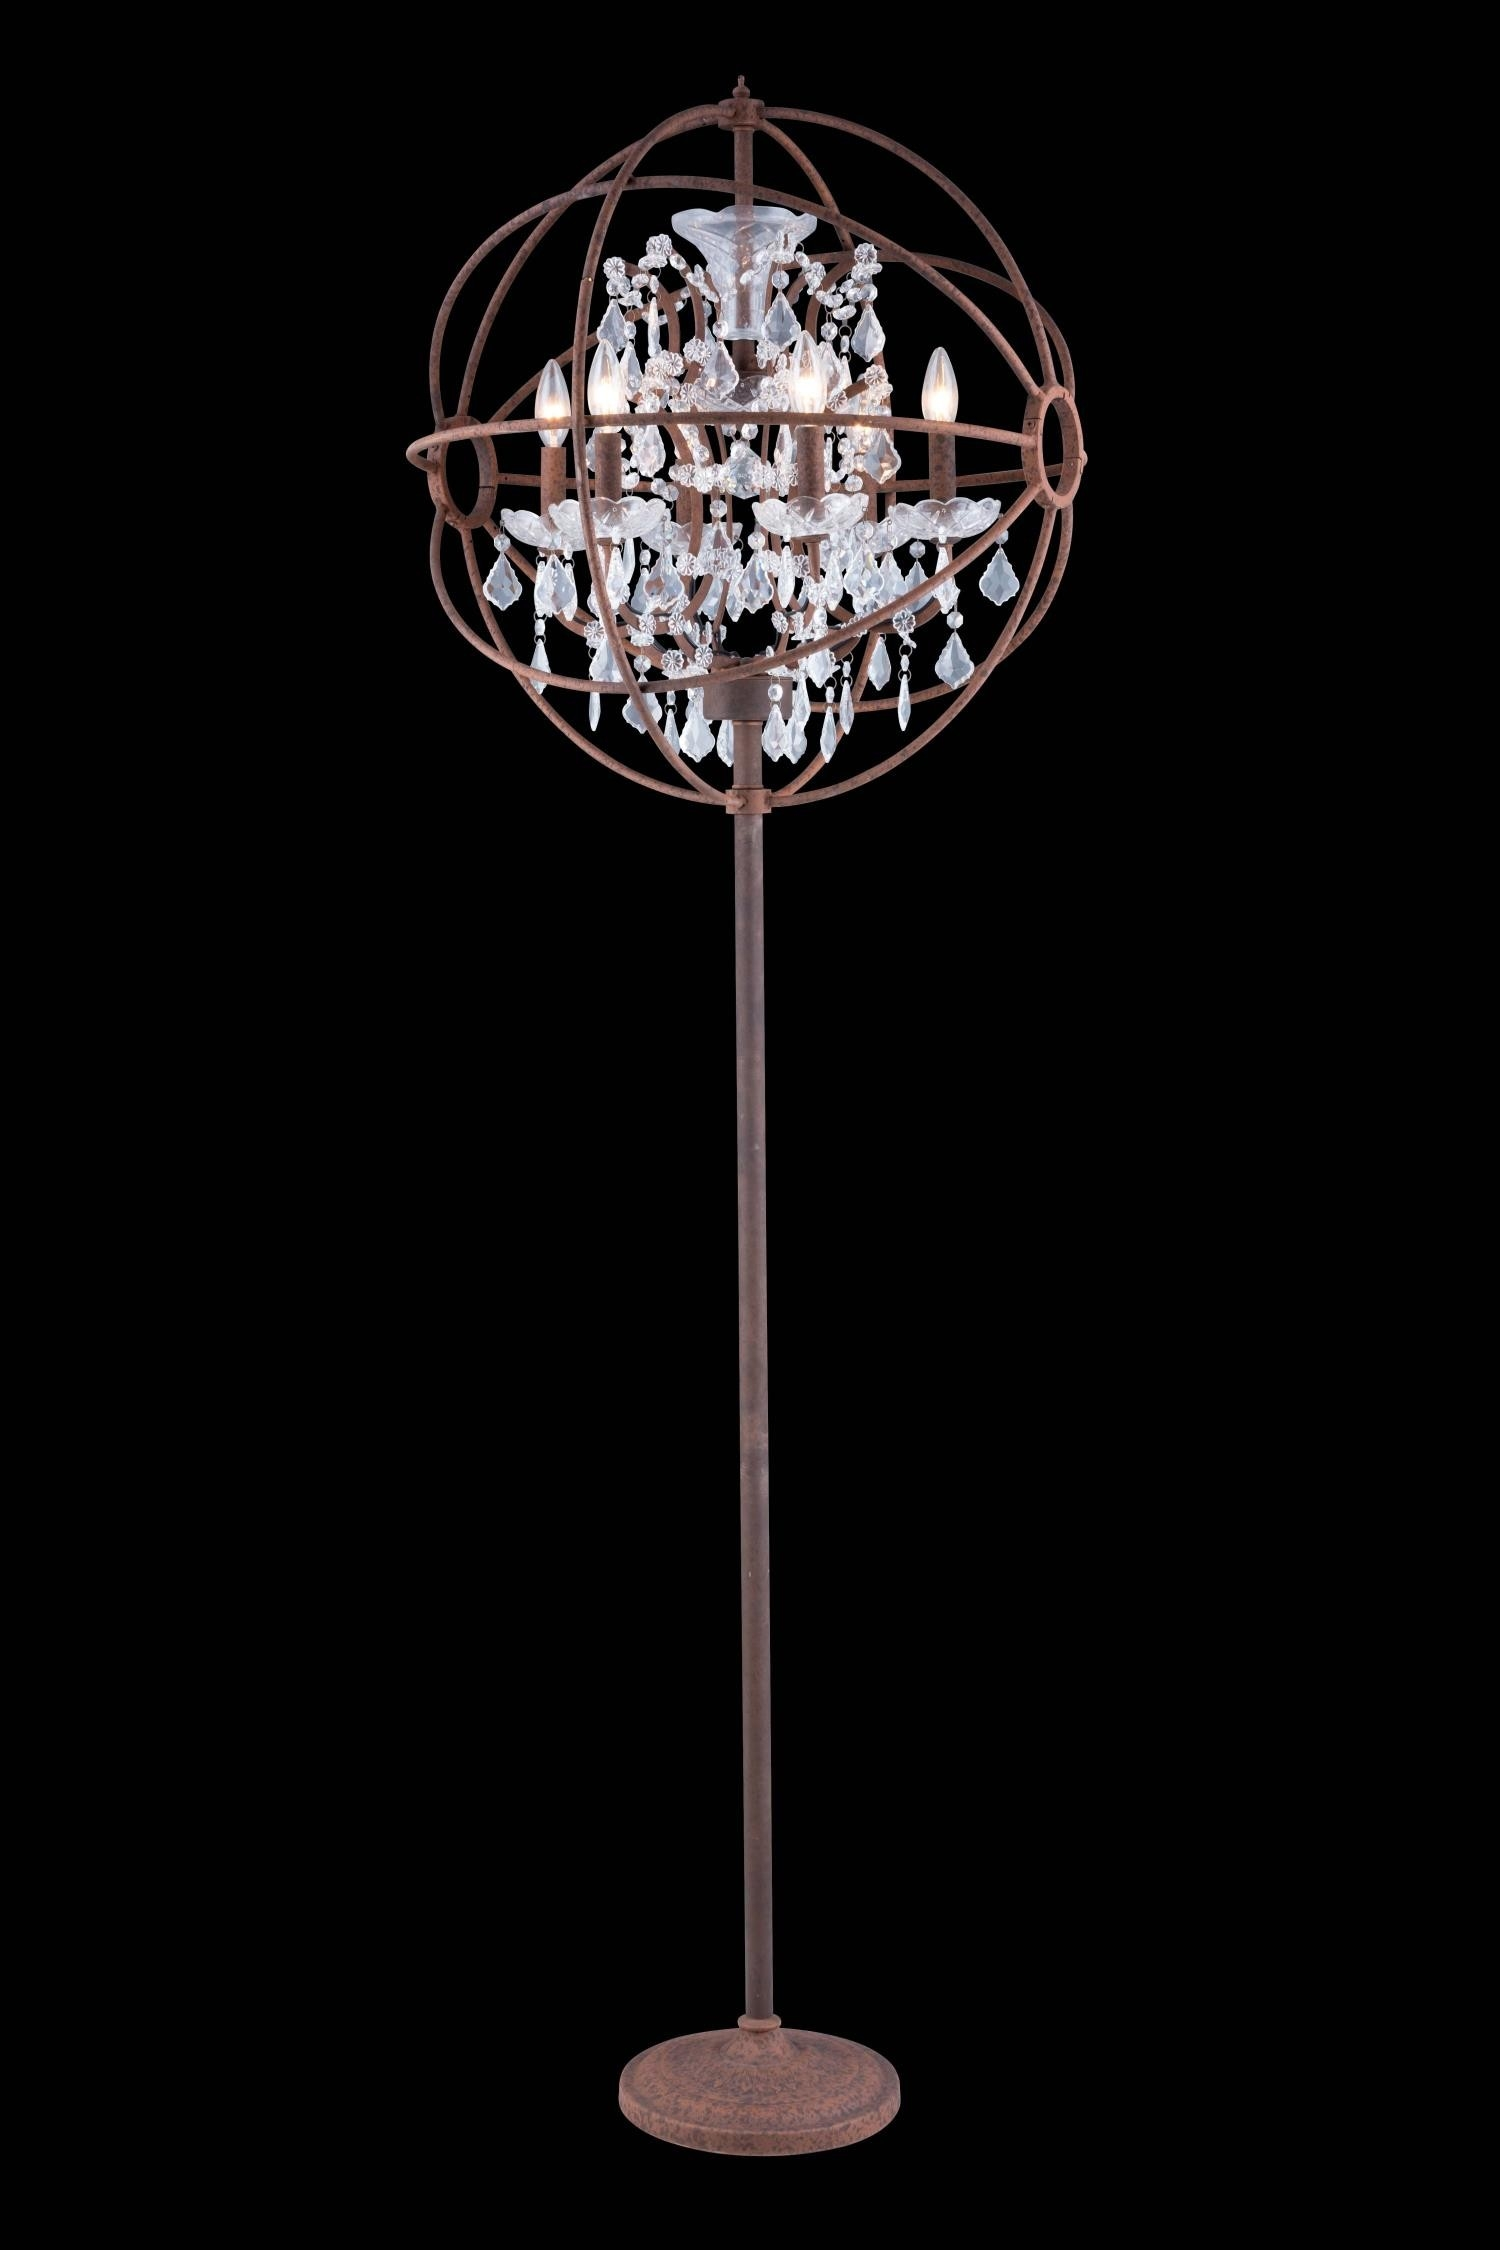 Lights Tall Chandelier Lamp Crystal Floor Lamp Horchow Lamps Sale With Tall Standing Chandelier Lamps (Image 18 of 25)